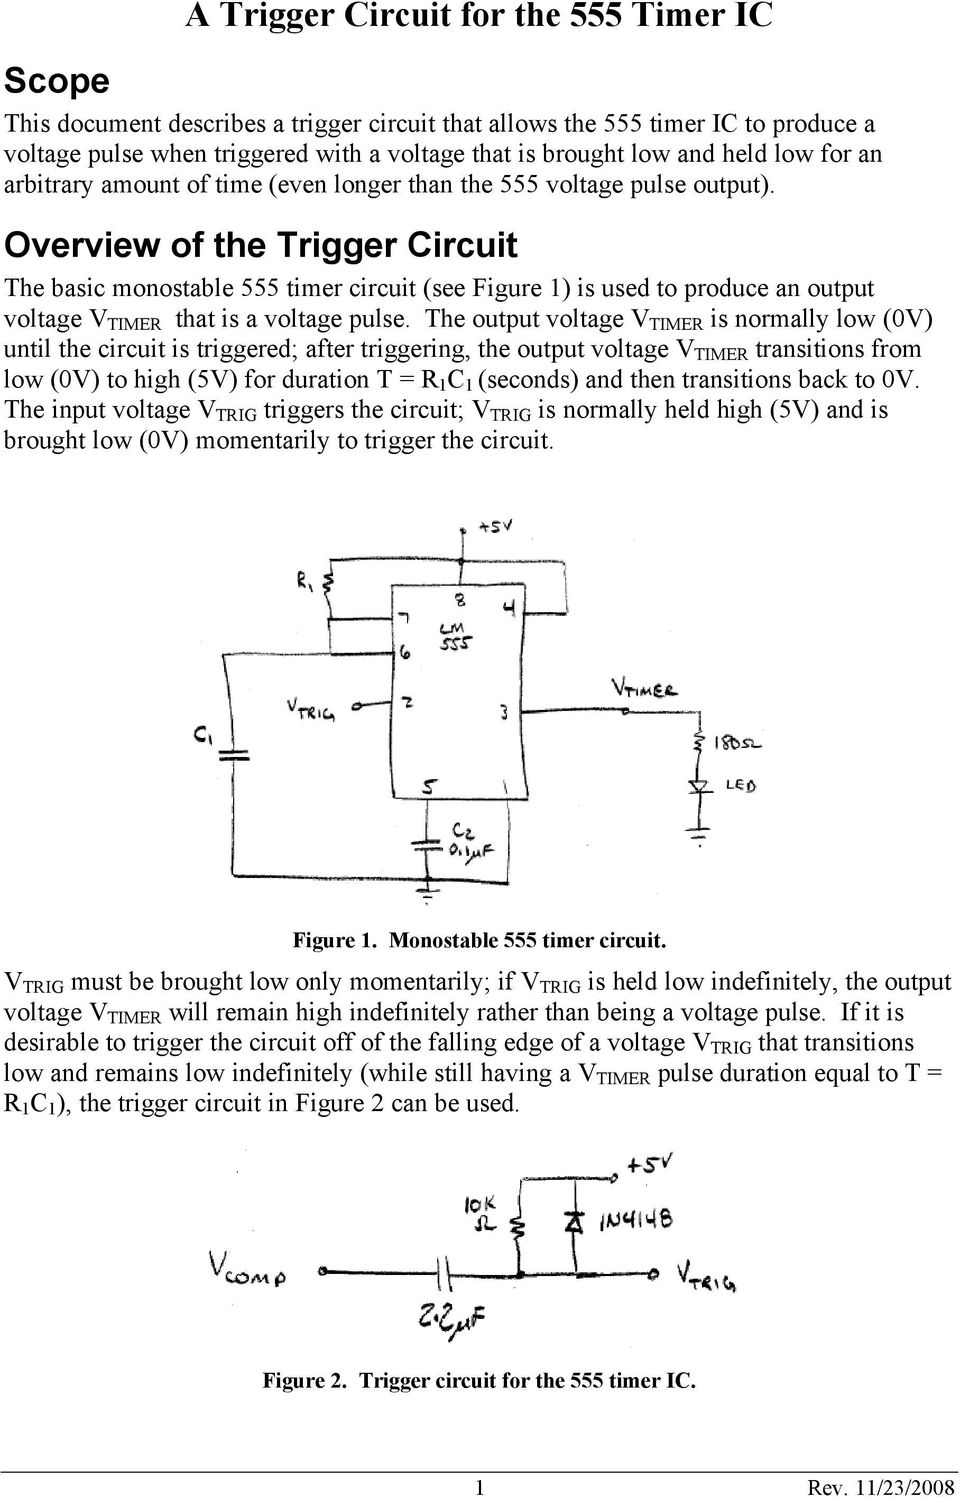 A Trigger Circuit For The 555 Timer Ic Scope Pdf Logic And Switching Theory Overview Of Basic Monostable See Figure 1